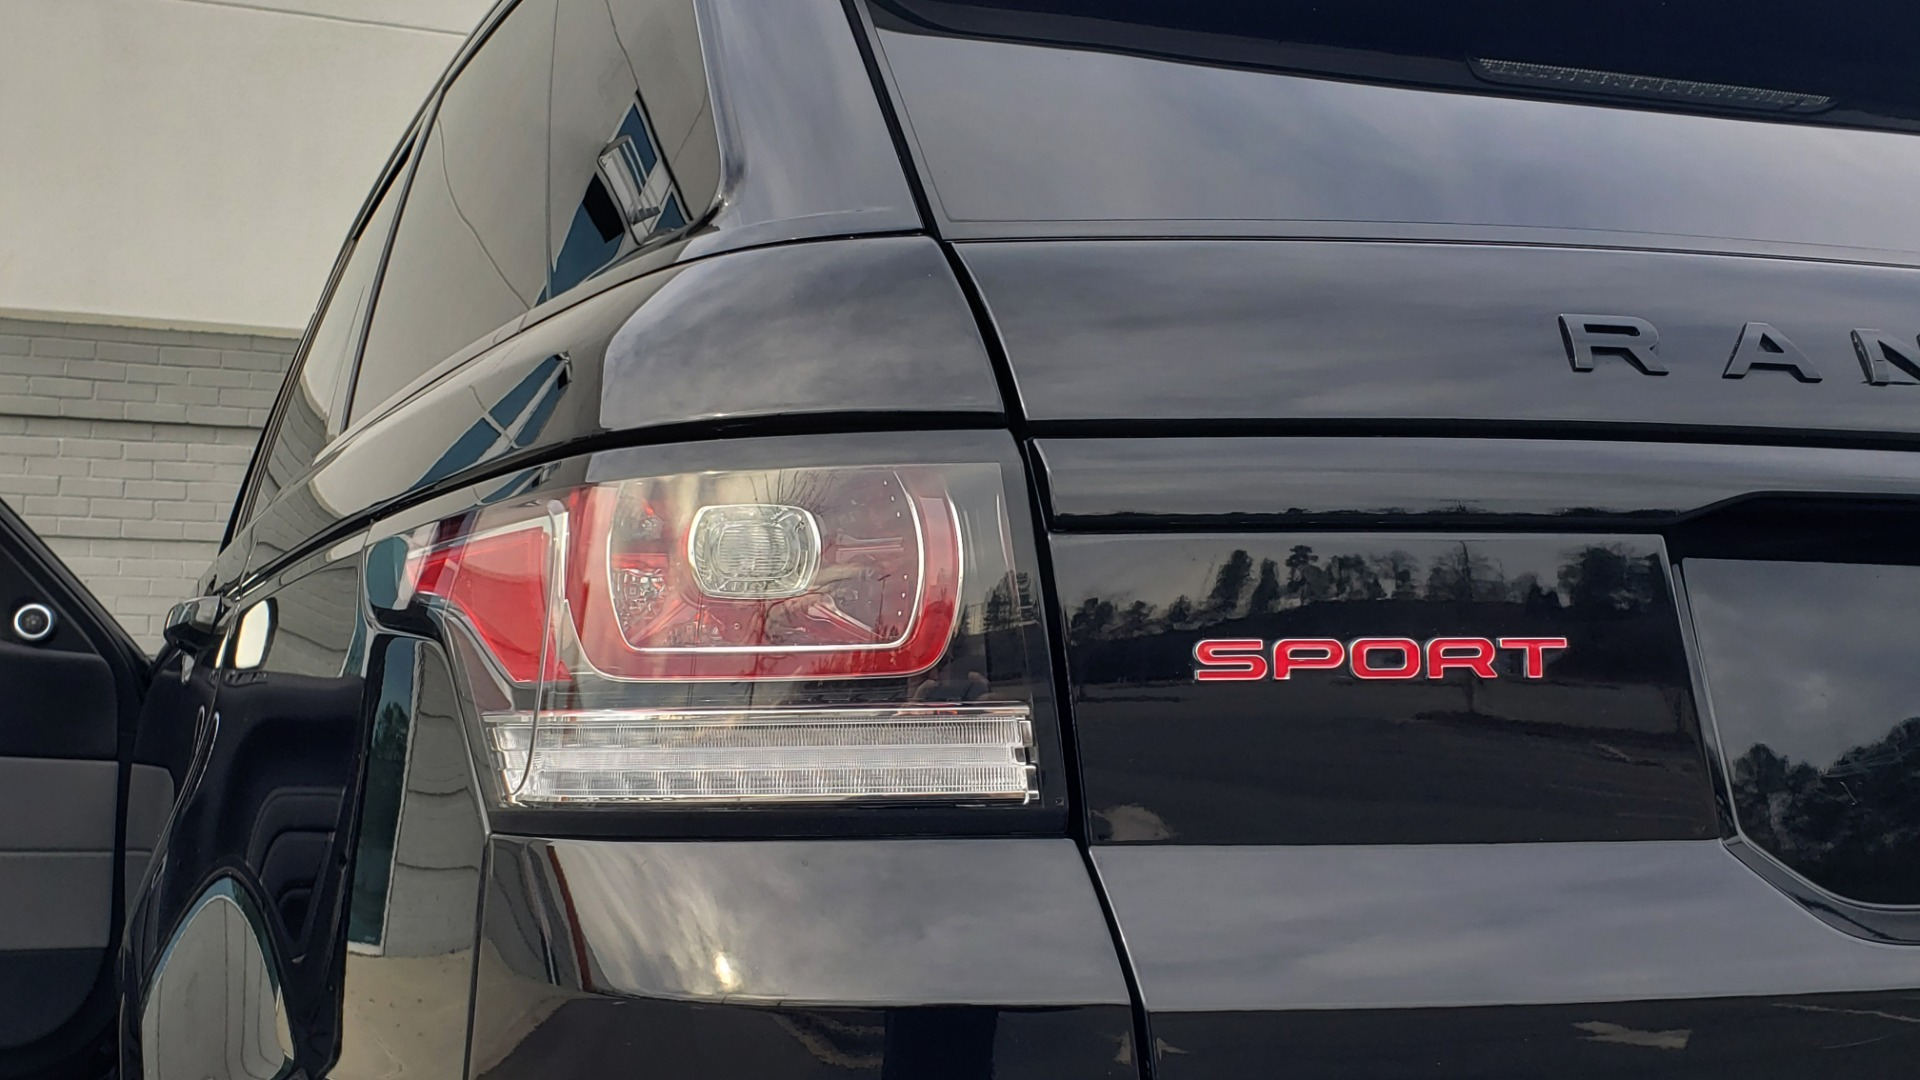 Used 2017 Land Rover RANGE ROVER SPORT HSE DYNAMIC / SC V6 / NAV / MERIDIAN / PANO-ROOF / REARVIEW for sale Sold at Formula Imports in Charlotte NC 28227 130